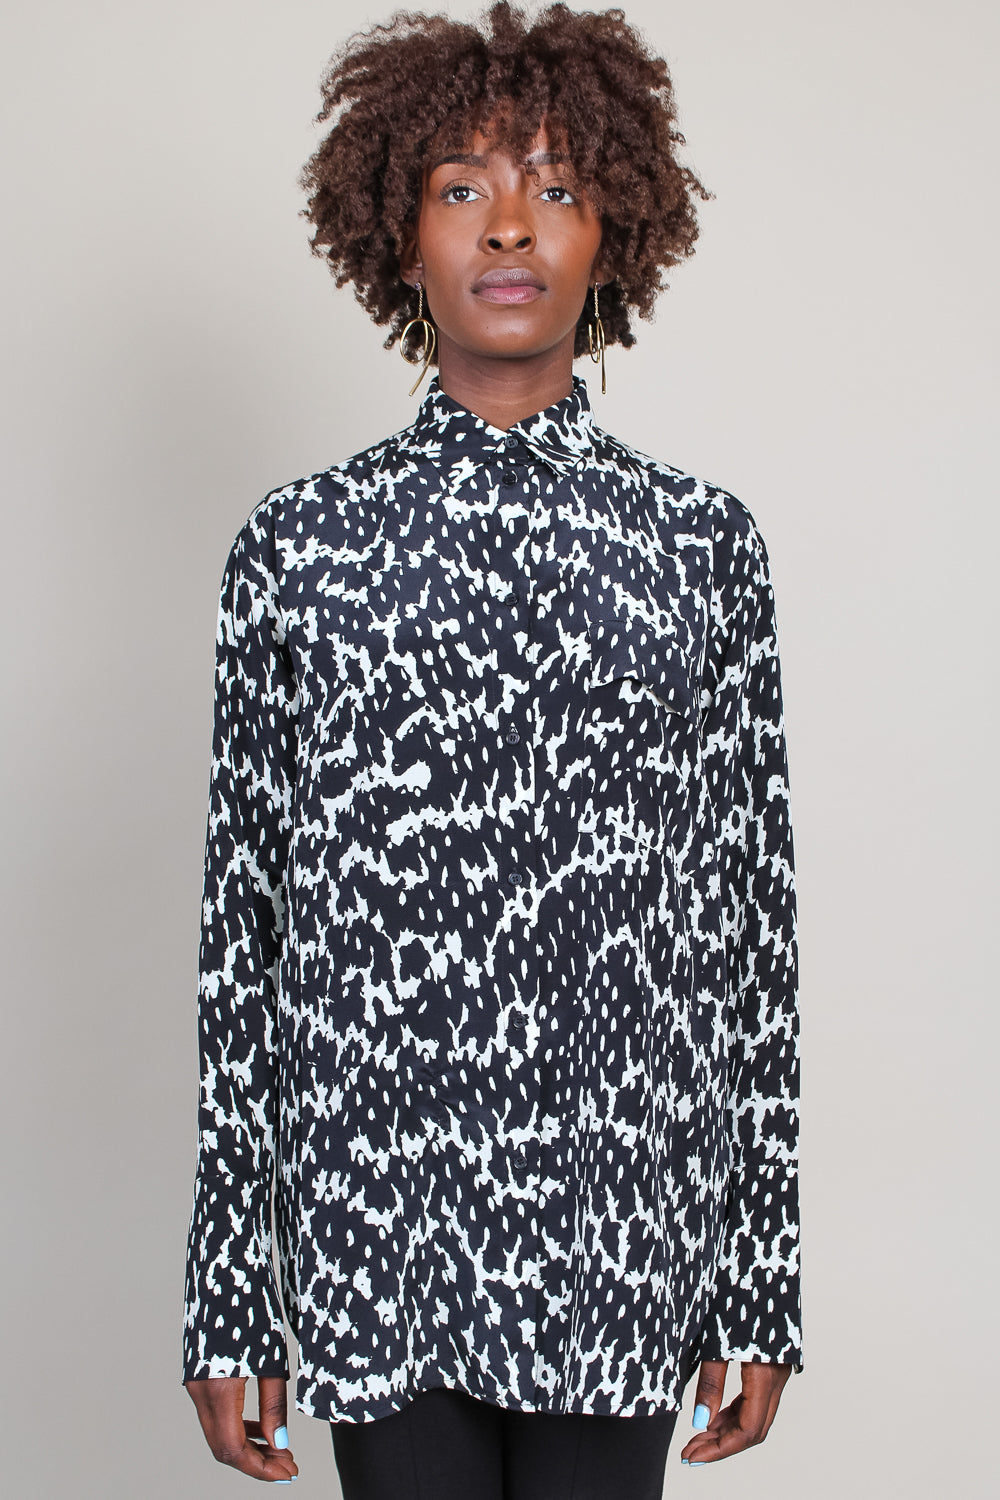 Tumpet Shirt in Black/White Python